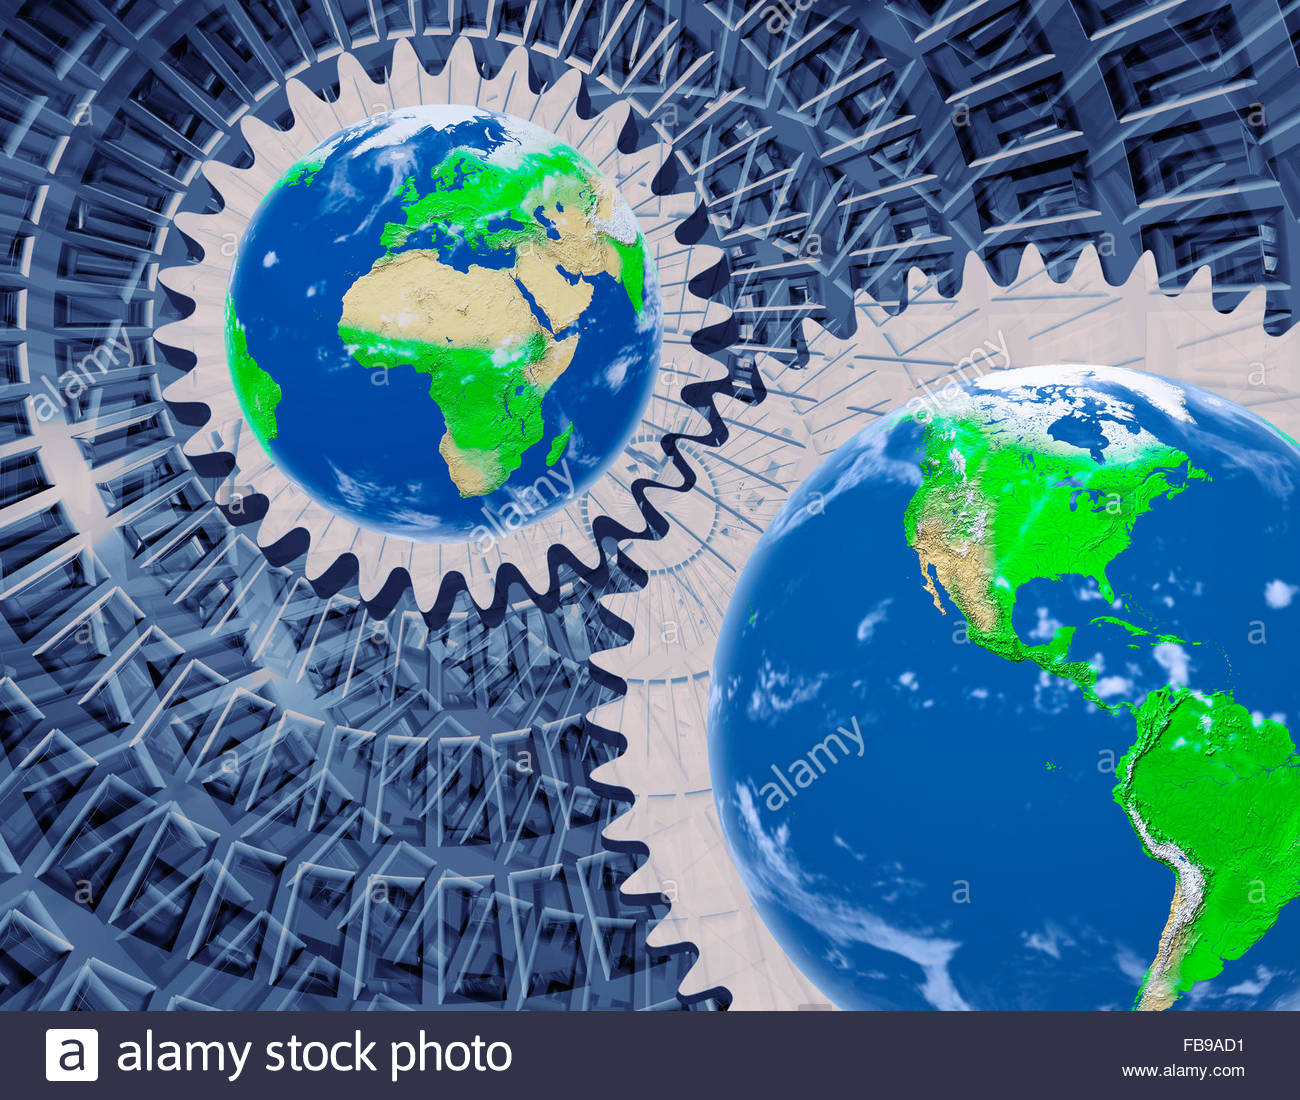 Concept of the earth being driven by the physics of the universe - Stock Image